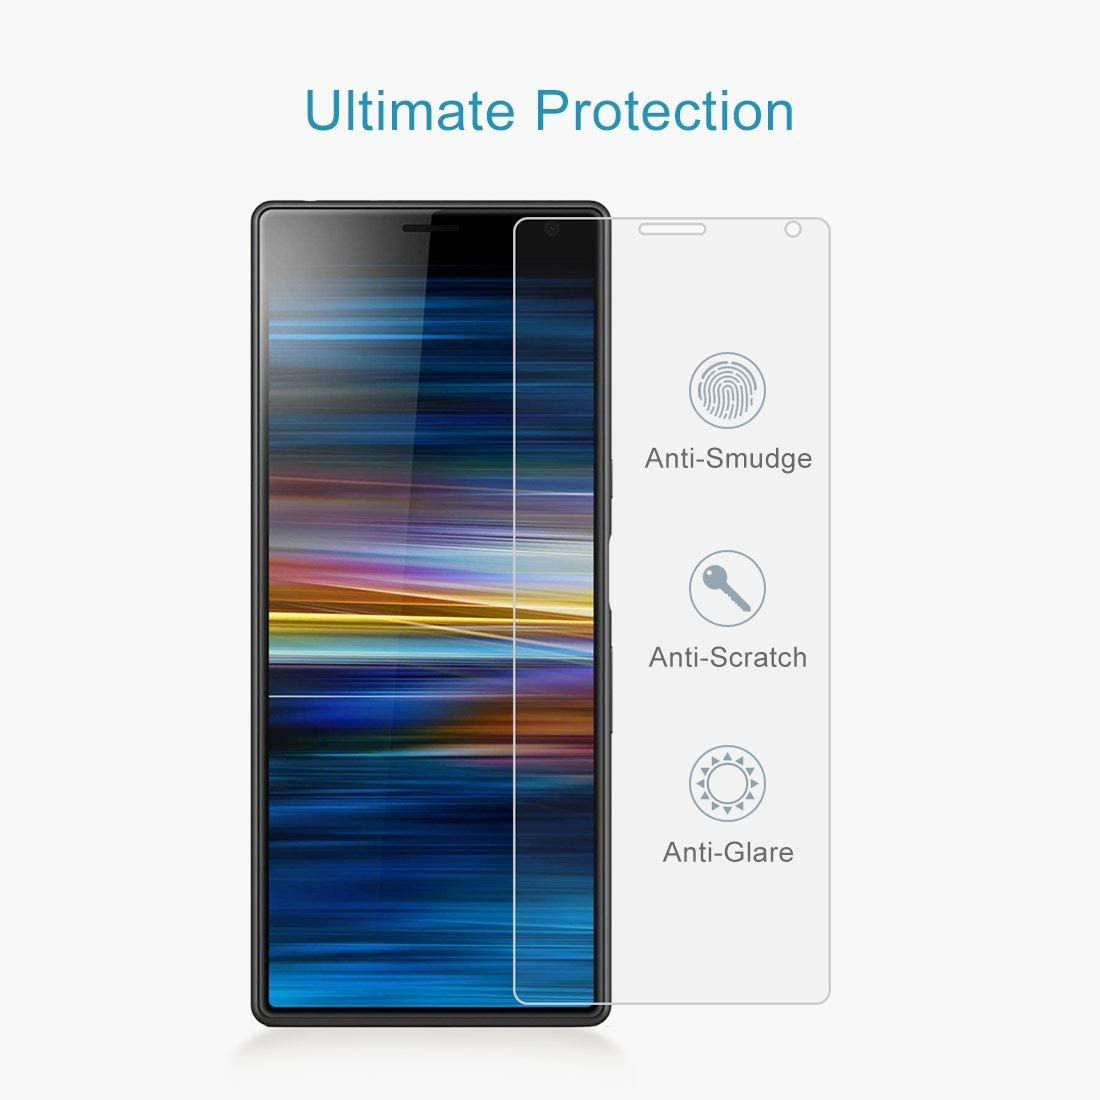 Leya Screen Protector 100 PCS 0.26mm 9H 2.5D Tempered Glass Film for Sony Xperia 10 Plus